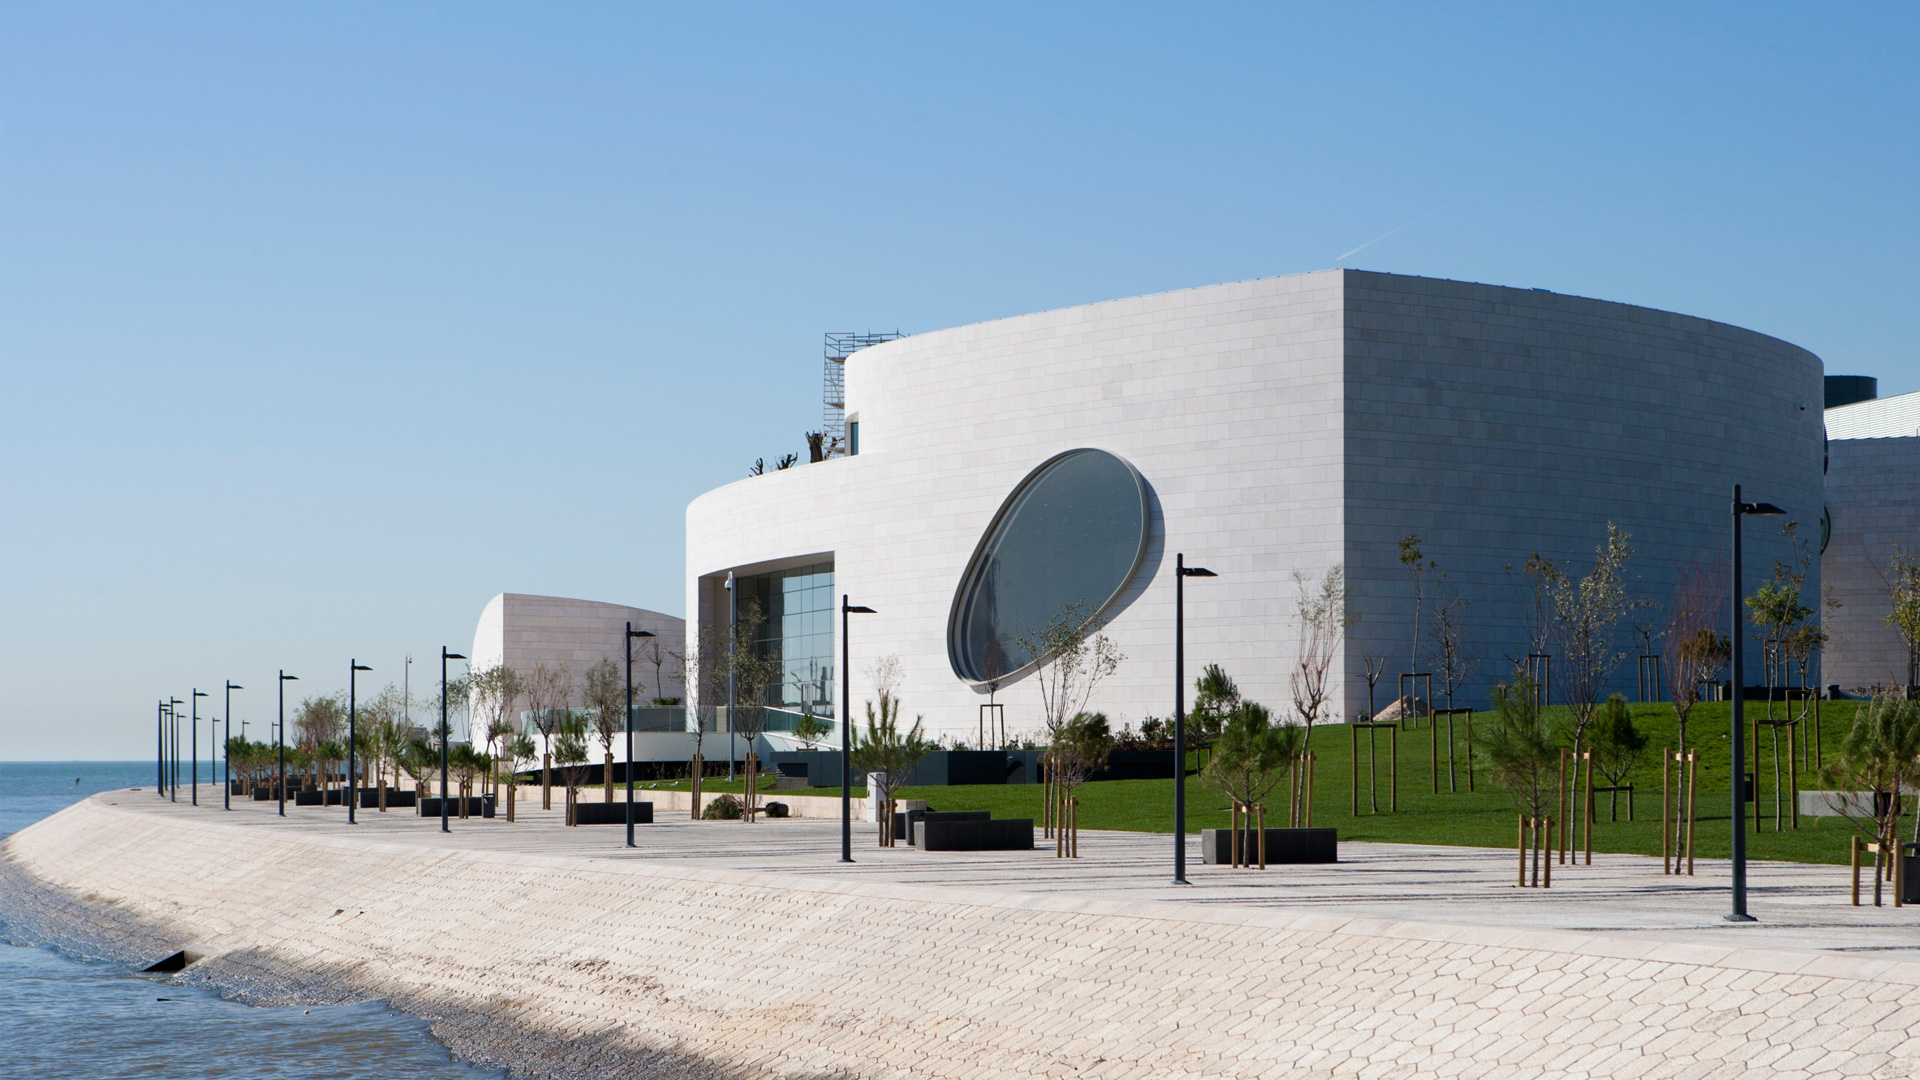 Best Architectural Design: Champalimaud Foundation what to do in lisbon What To Do In Lisbon: 48 Hours In The Capital eee2e50699c1706f19d948a1ac49a0dc